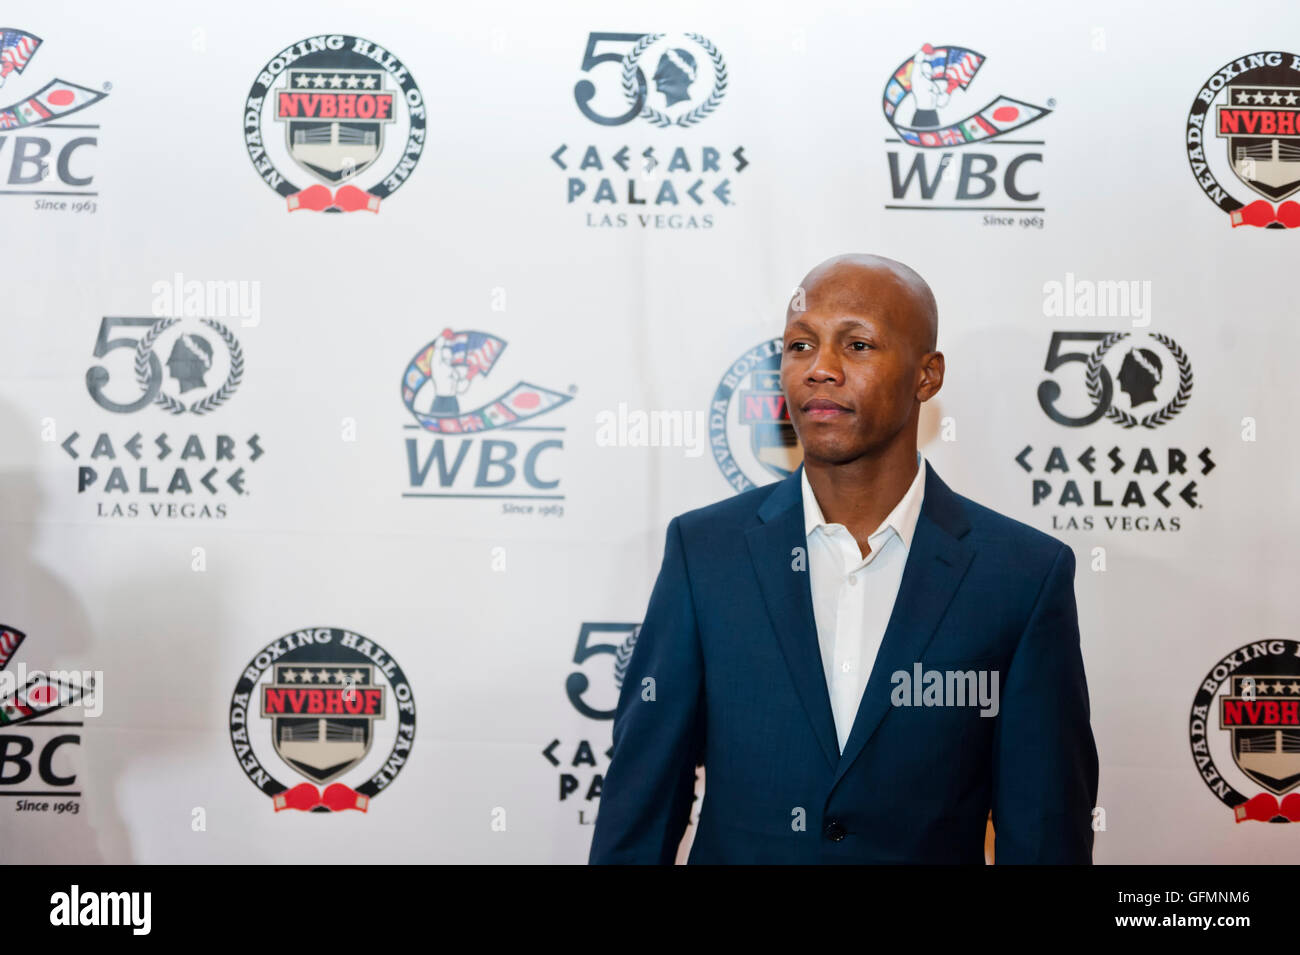 Las Vegas, Nevada, USA. 30th July, 2016. Zab Judah on the red carpet at the 4th Annual Nevada Boxing Hall of Fame - Stock Image